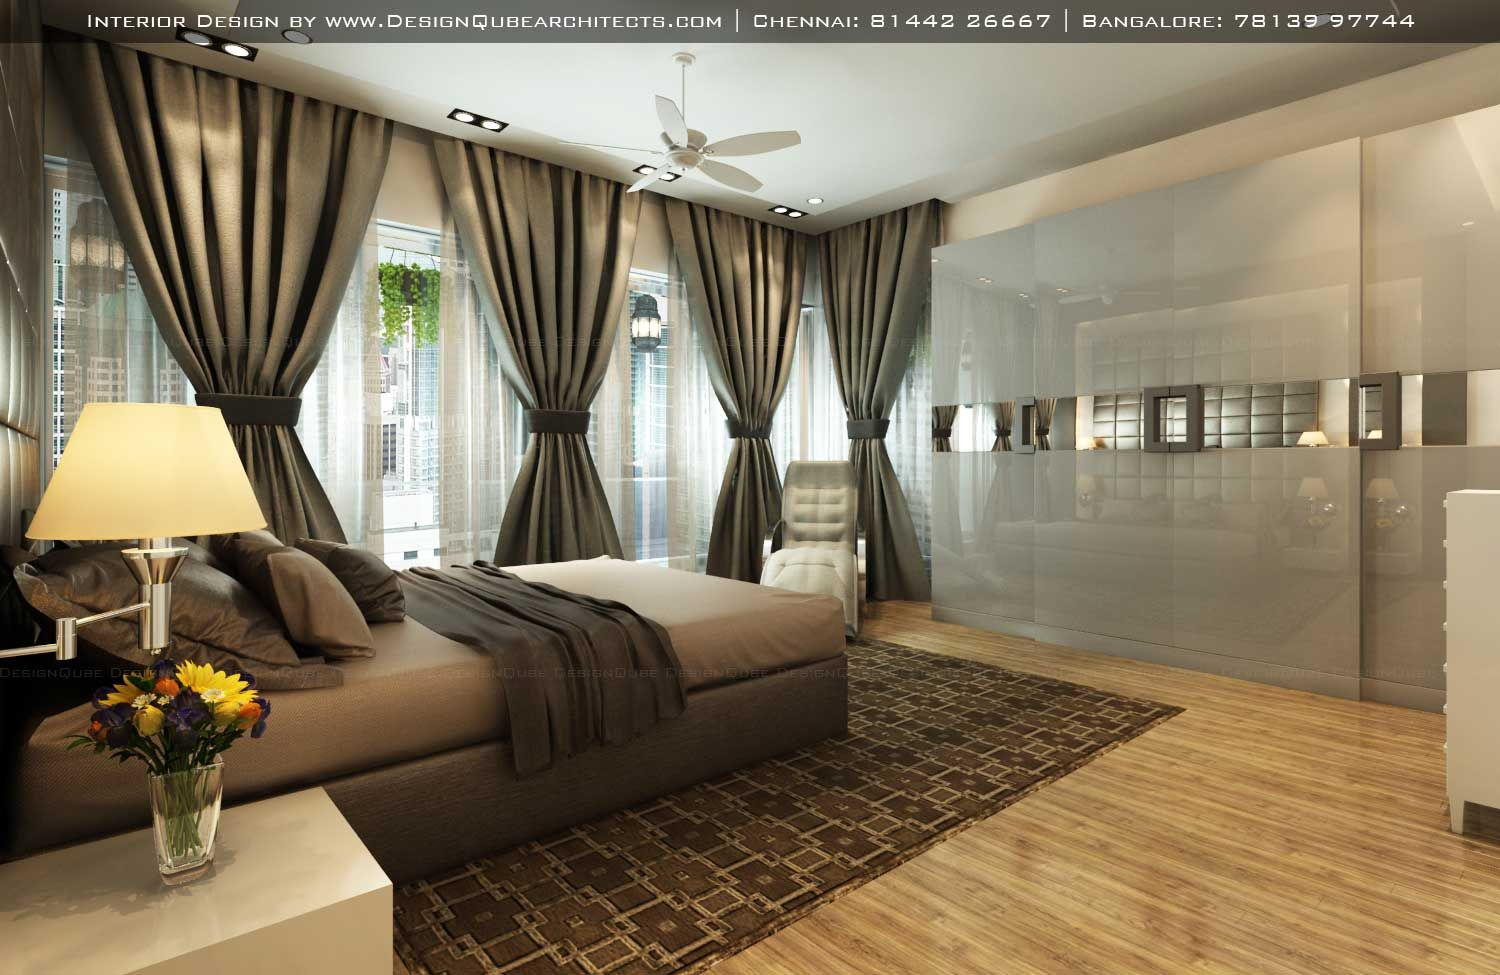 designqube architects interior designers jaipur pin